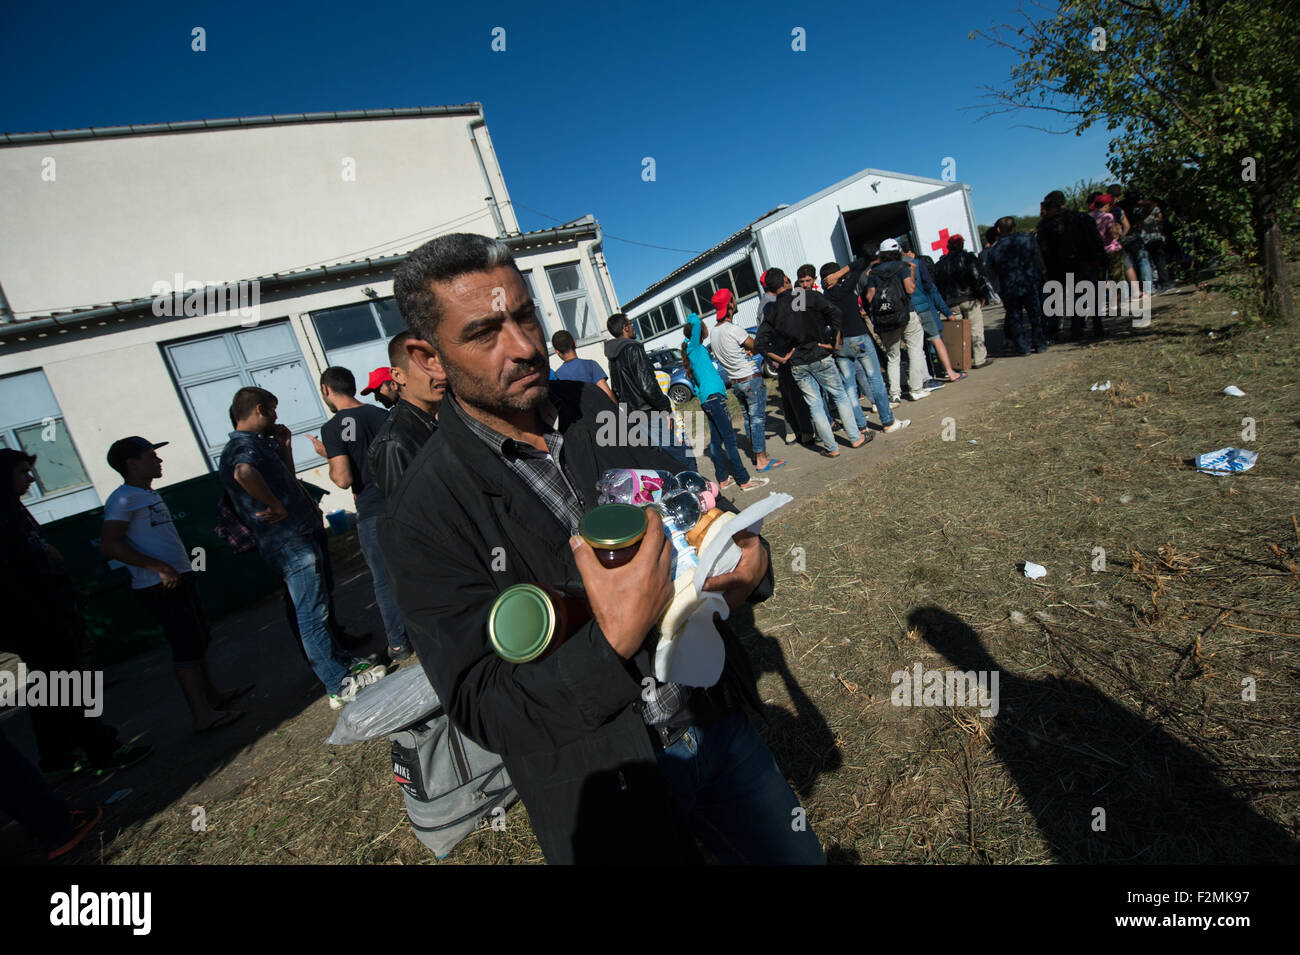 Opatovac, Croatia. 21st Sep, 2015. A refugee from Iraq carries food rations in his arms in a tent camp near Opatovac, Stock Photo